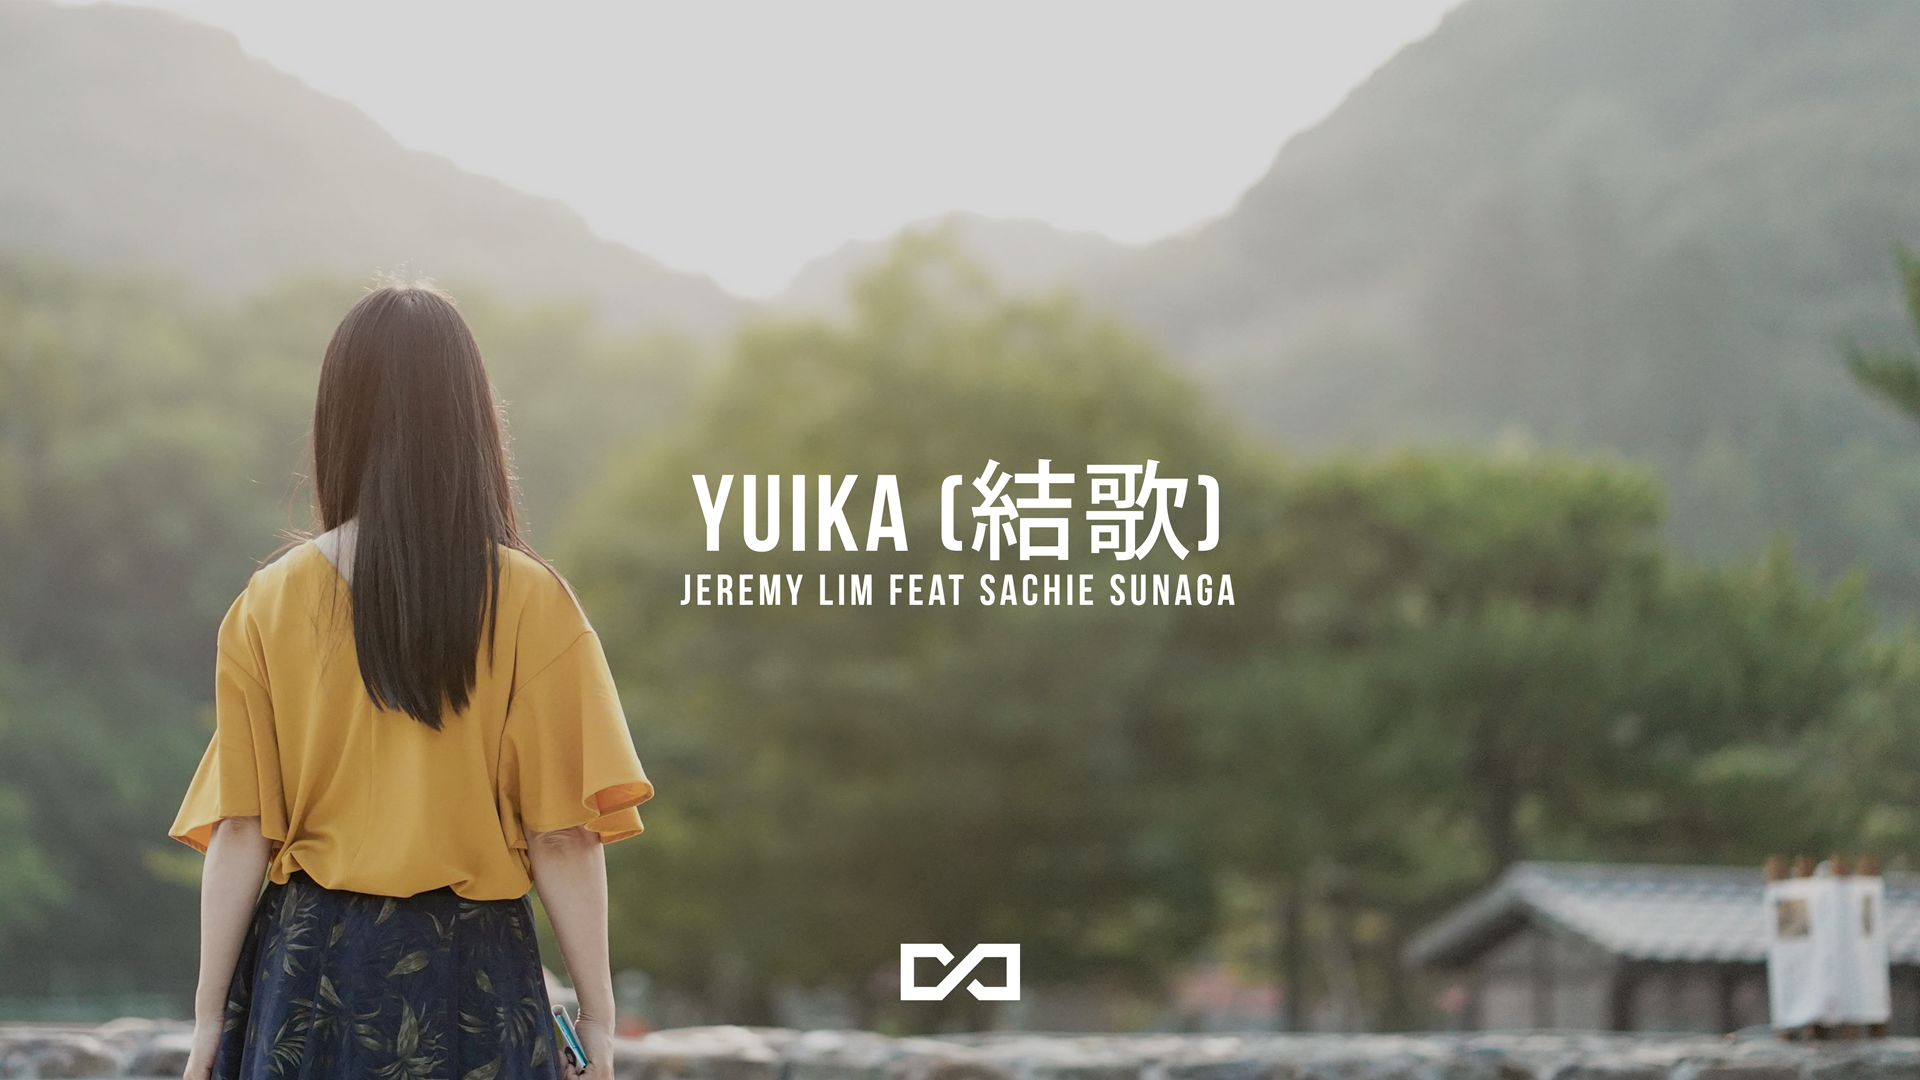 Yuika feat. Sachie Sunaga for Impossible to Imagine